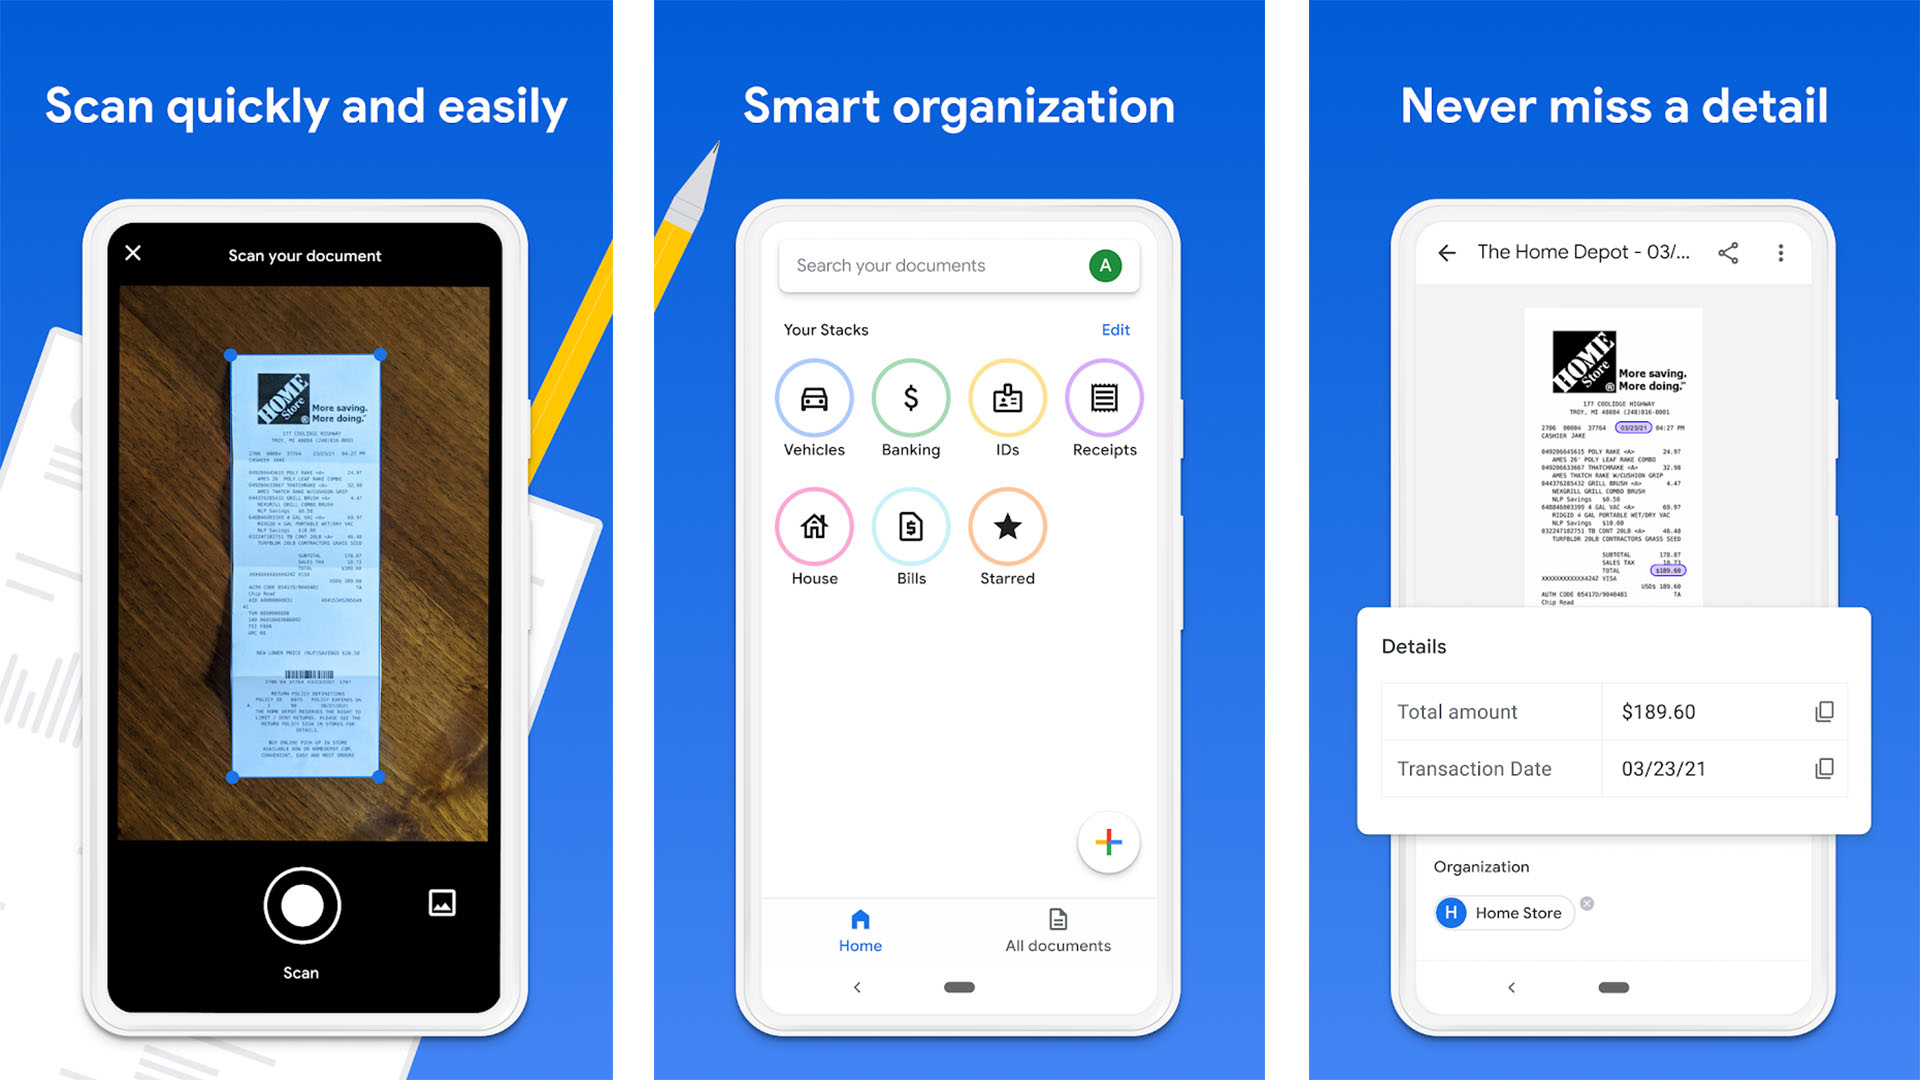 try-the-best-new-android-apps-of-april-2021-right-now 6